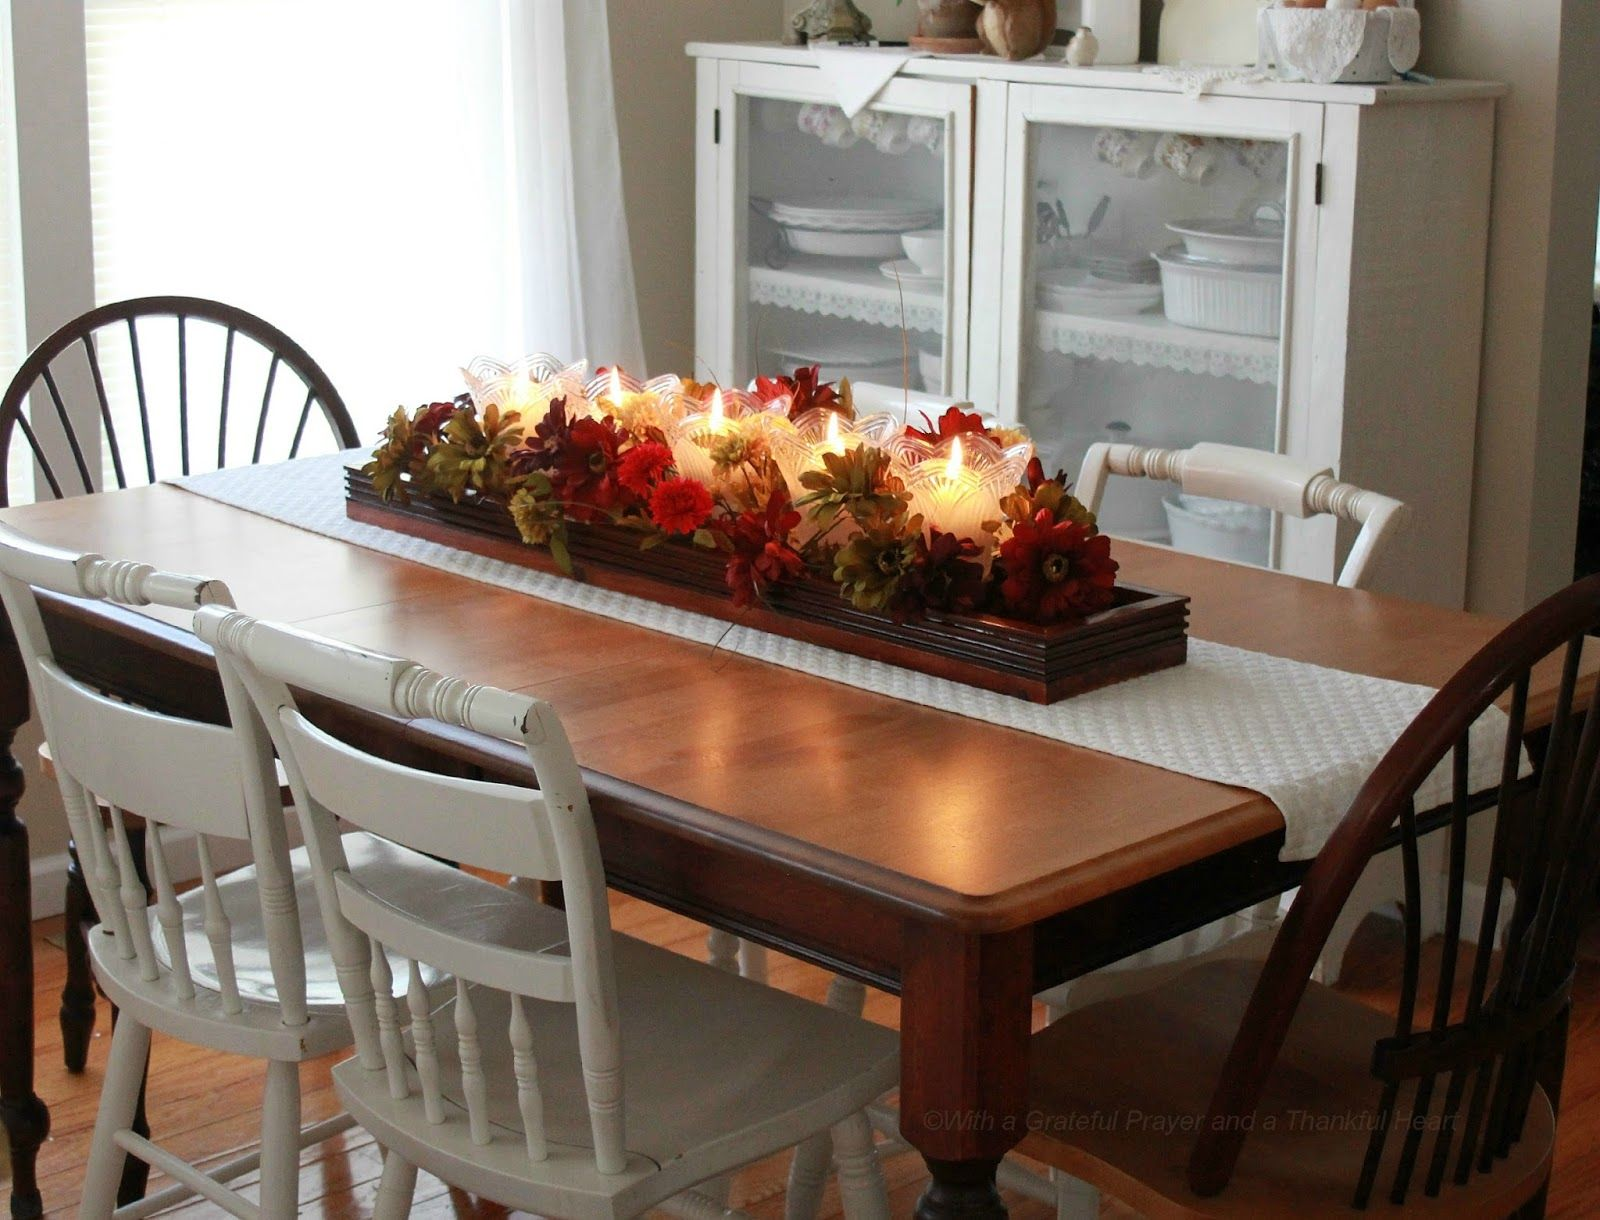 Kitchen Table Centerpiece Ideas Centerpiece From Repurposed Globes  Kitchen Centerpiece Country